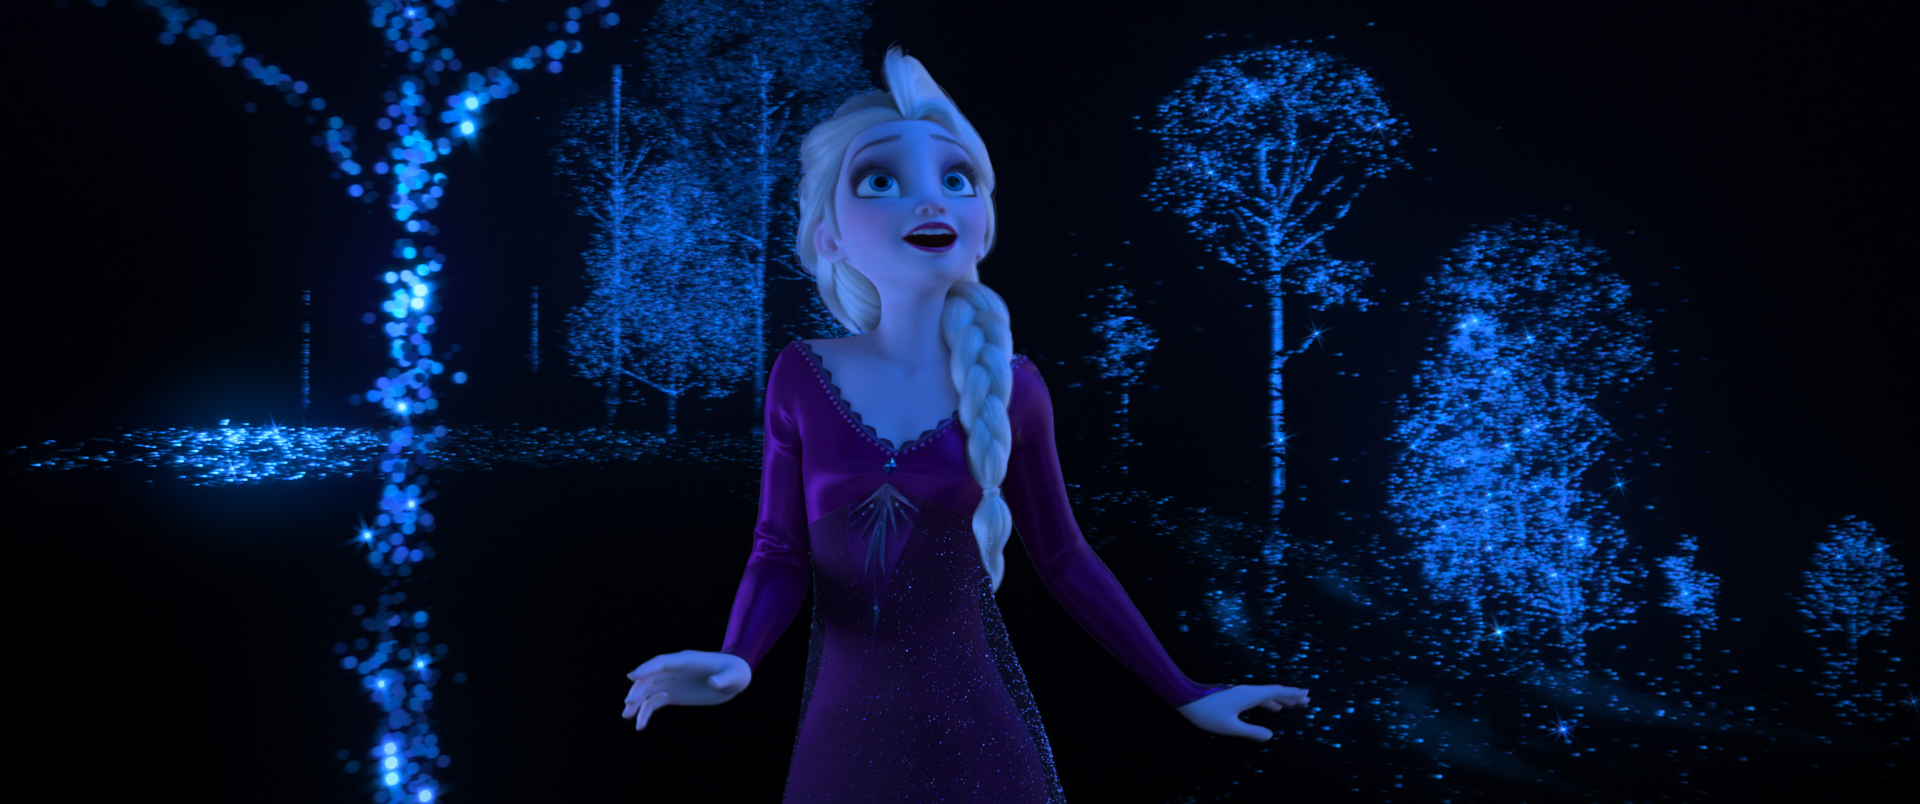 """INTO THE UNKNOWN – In """"Frozen 2,"""" Elsa feels that she's being beckoned by a voice from far away, a calling she can't ignore showcased in the original song """"Into the Unknown."""" She learns that answers await her—but she must venture far from home. Featuring Idina Menzel as the voice of Elsa, Walt Disney Animation Studios' """"Frozen 2"""" opens in U.S. theaters on Nov. 22, 2019. © 2019 Disney. All Rights Reserved."""